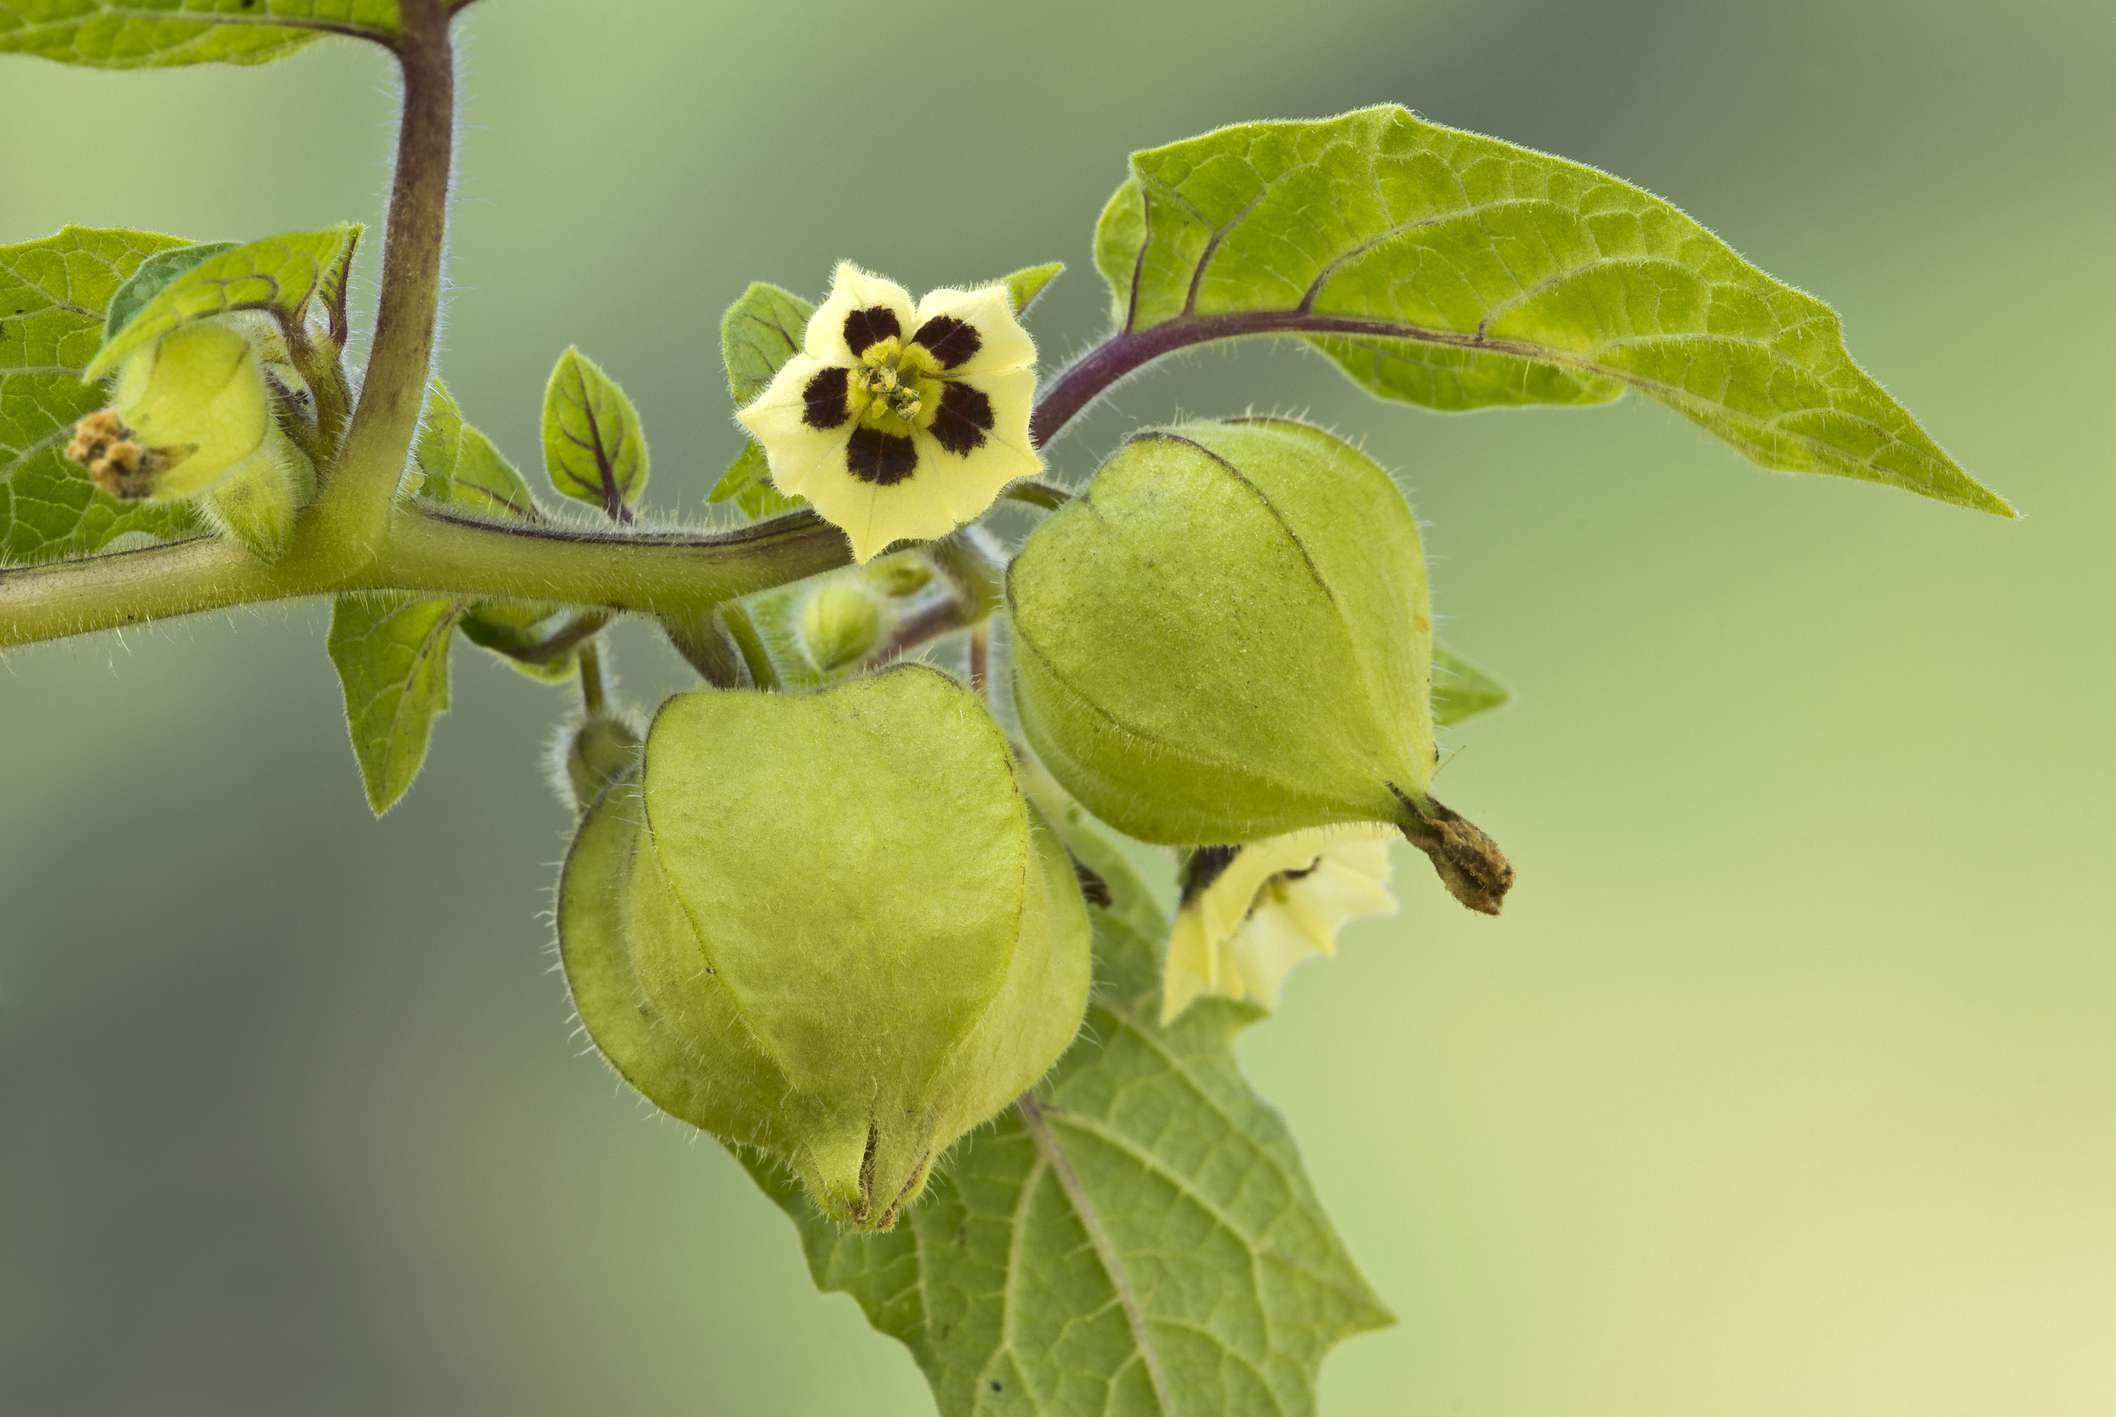 Unripe green husk leaves and bloom of the Ground Cherry